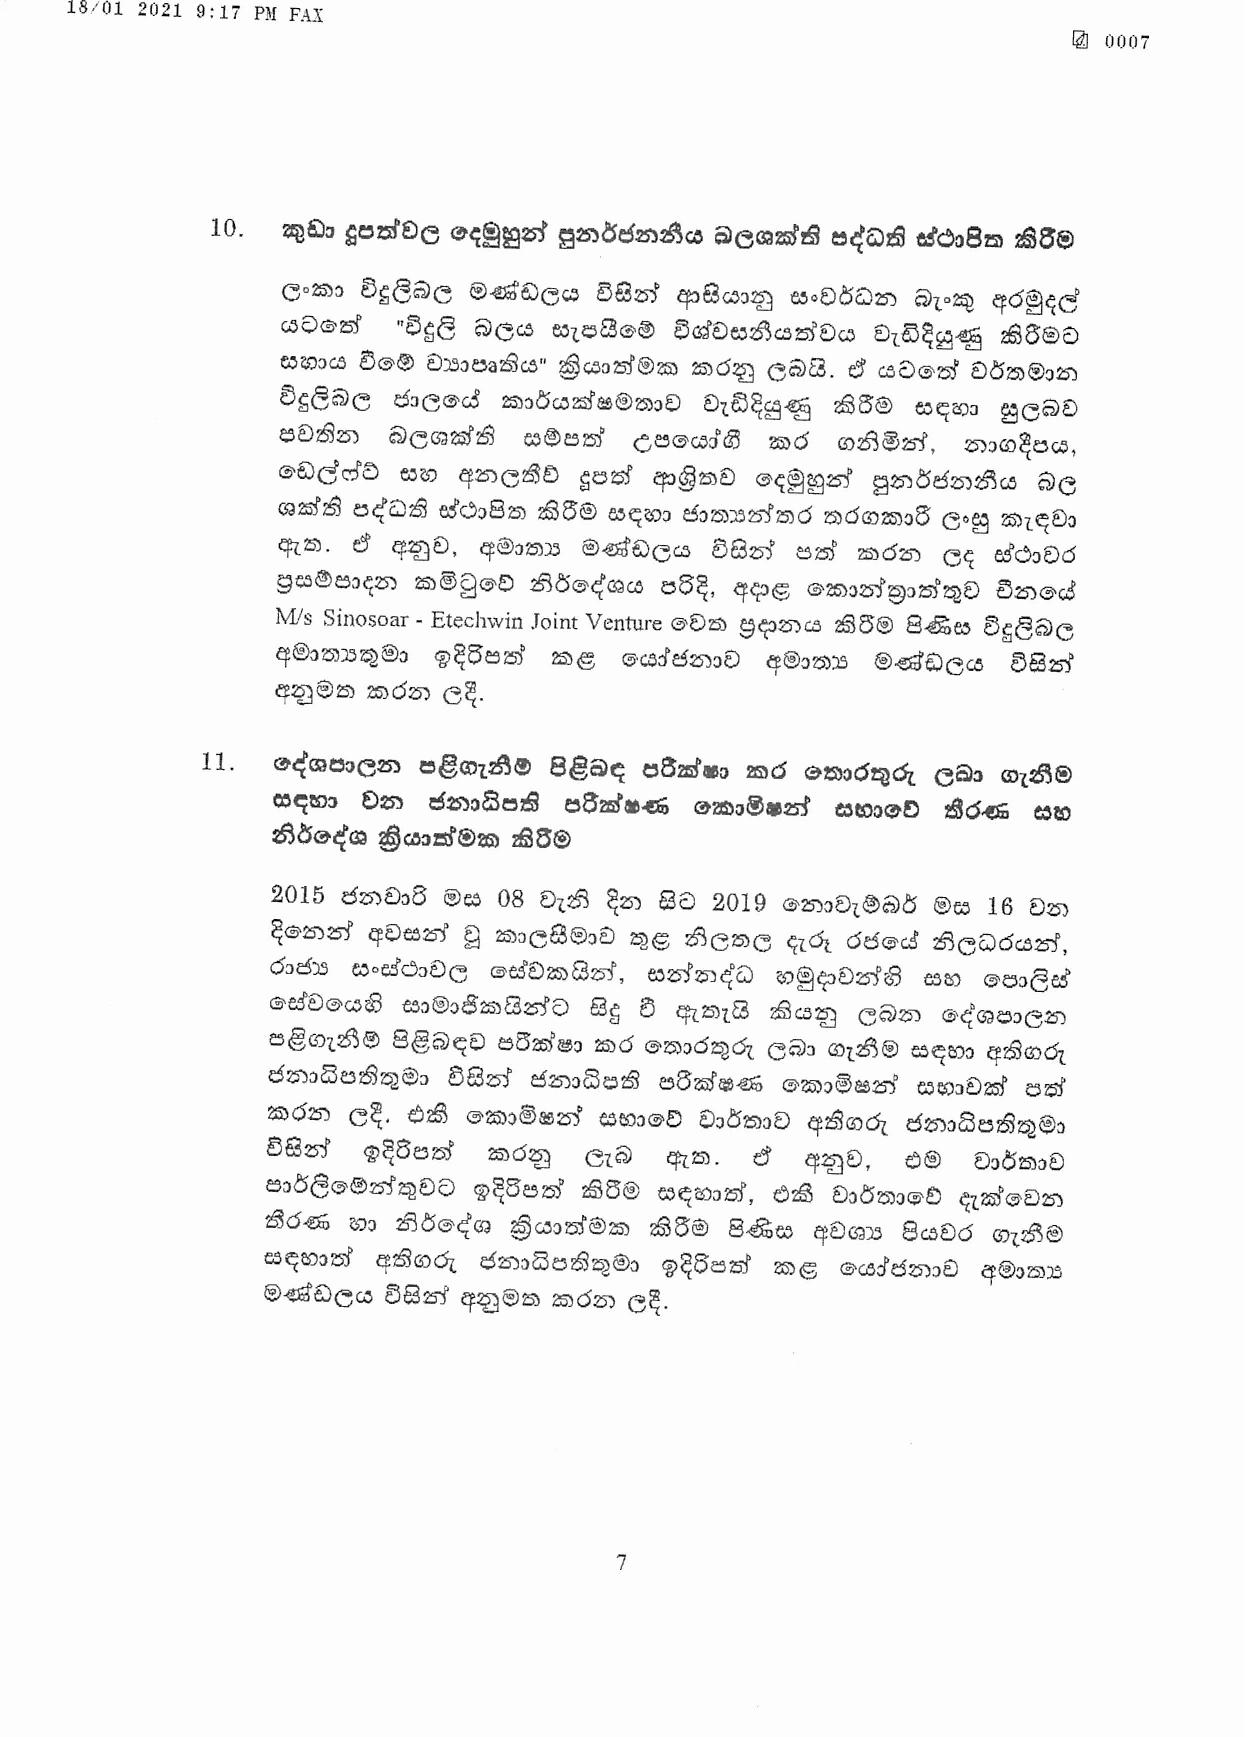 Cabinet Decision on 18.01.2021 page 007